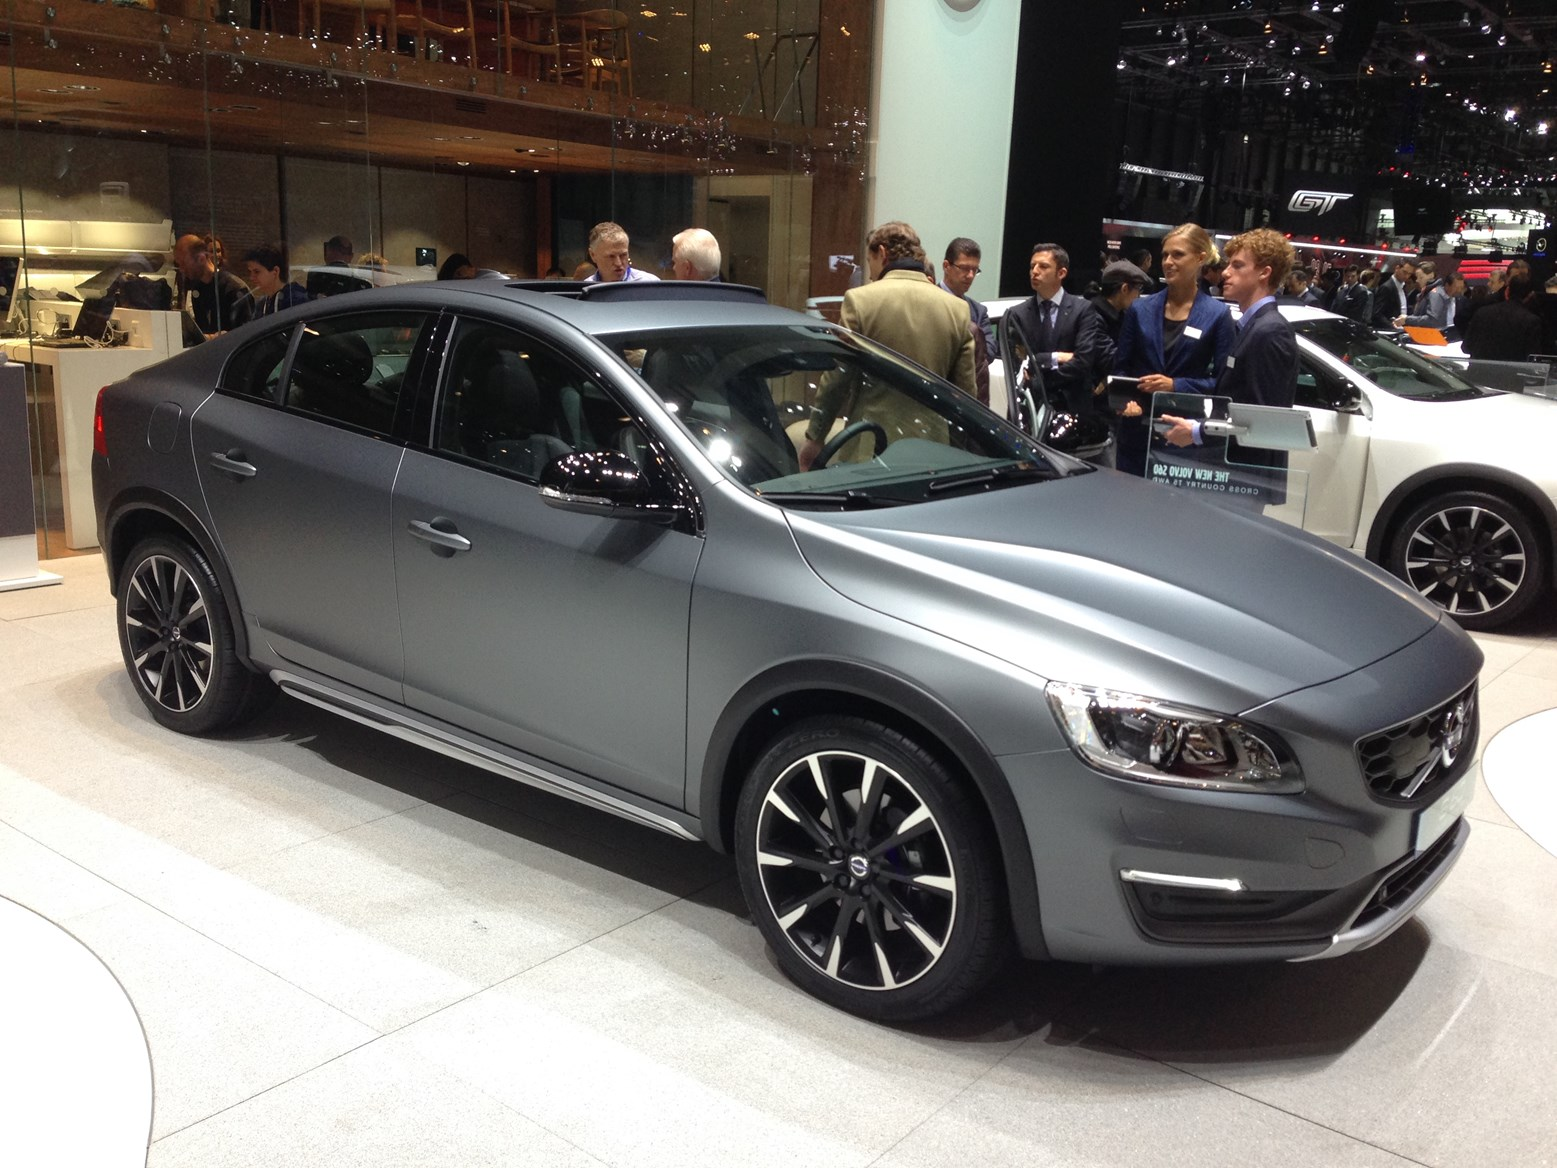 Volvo v60 cross country review 2015 parkers - Volvo Xc90 R Design Volvo S60 Cross Country